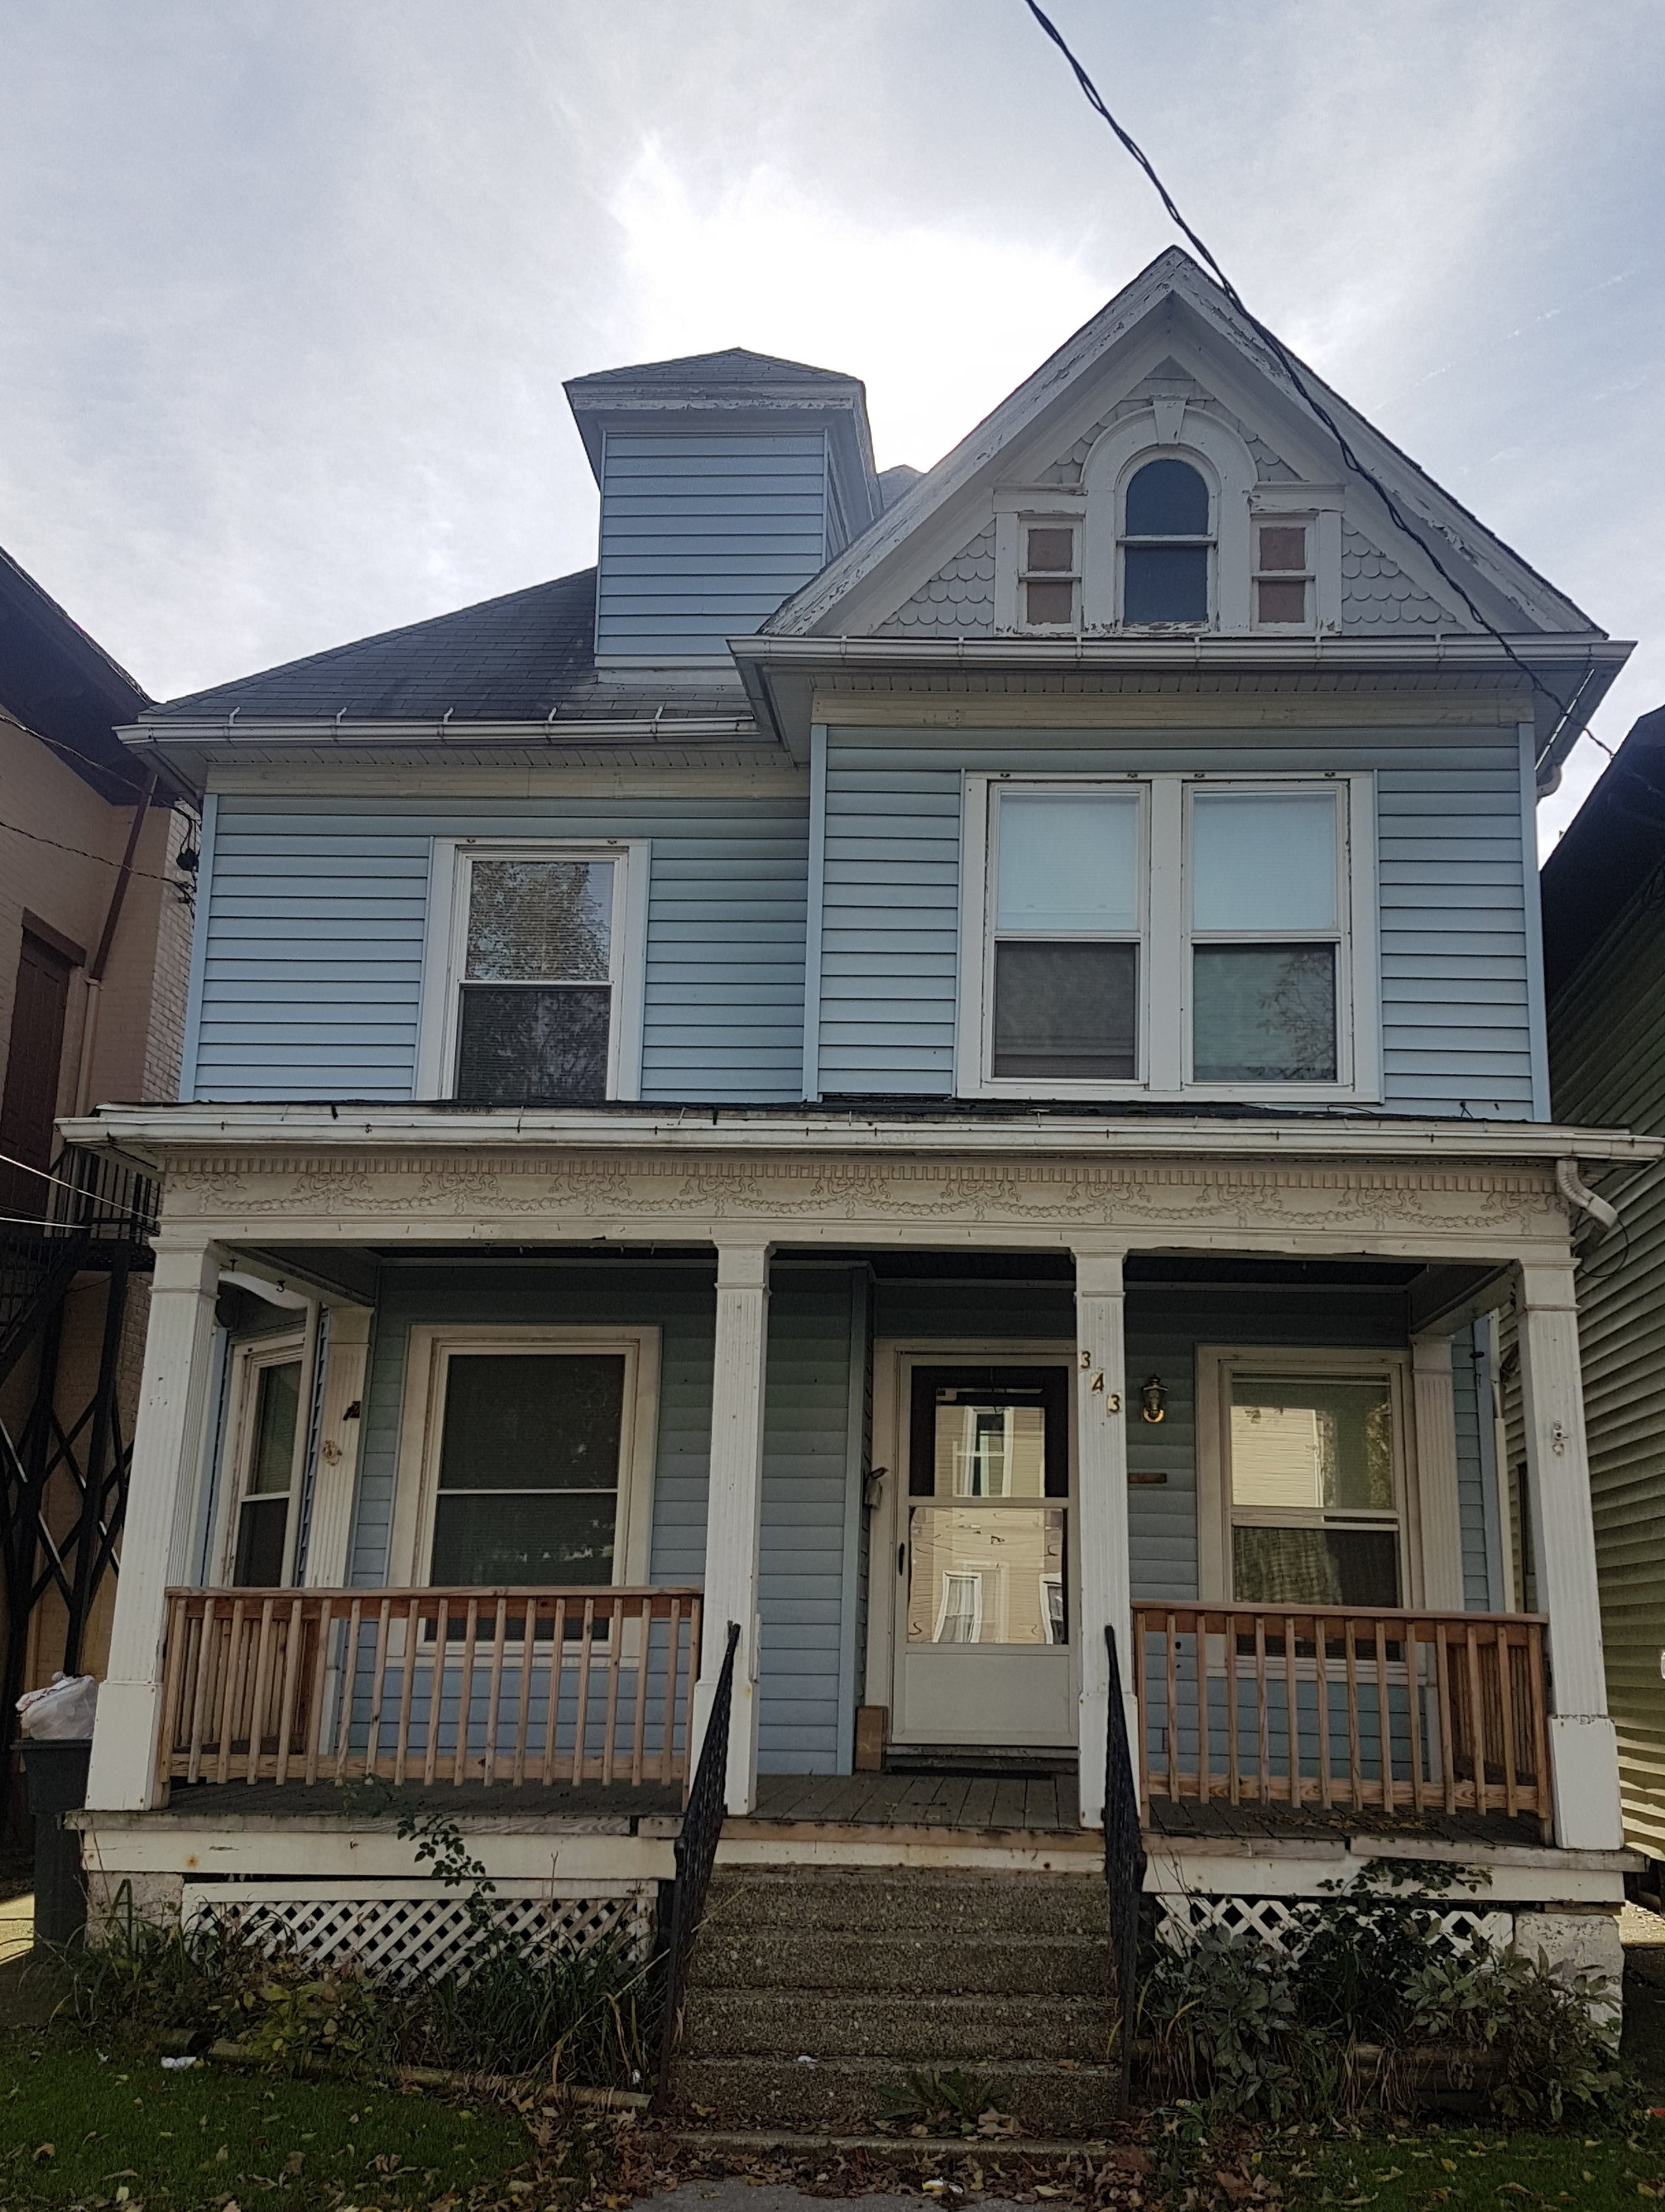 Blueberry House - 343 W 8th Erie Pa 16502A large single family home ideal for student living offers five bedrooms with two full bathrooms, off street parking, free laundry included.